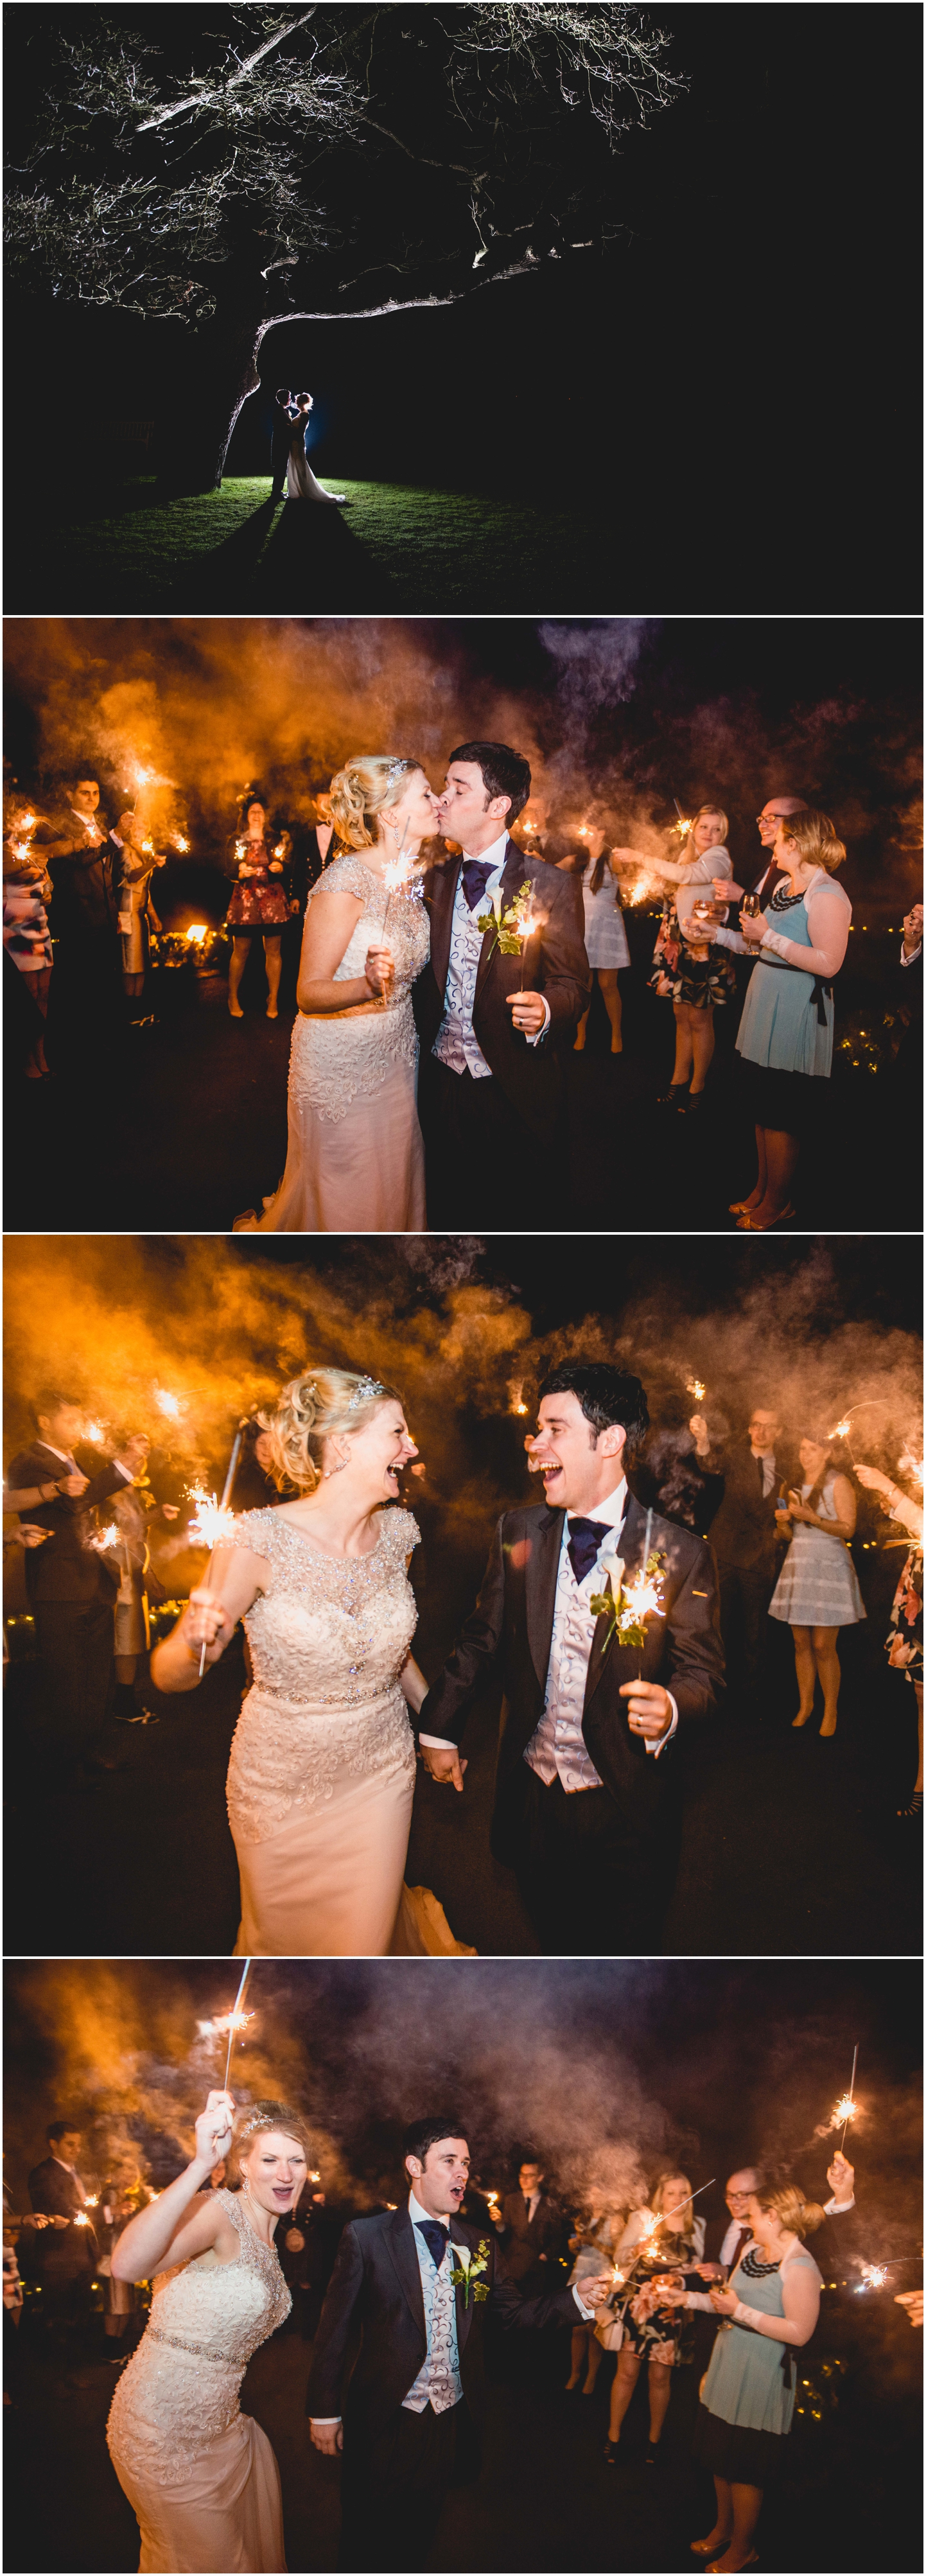 Pendrell Hall Wedding Photography by Lisa Carpenter Photography, West Midlands photographer, sparklers, sparkler exit